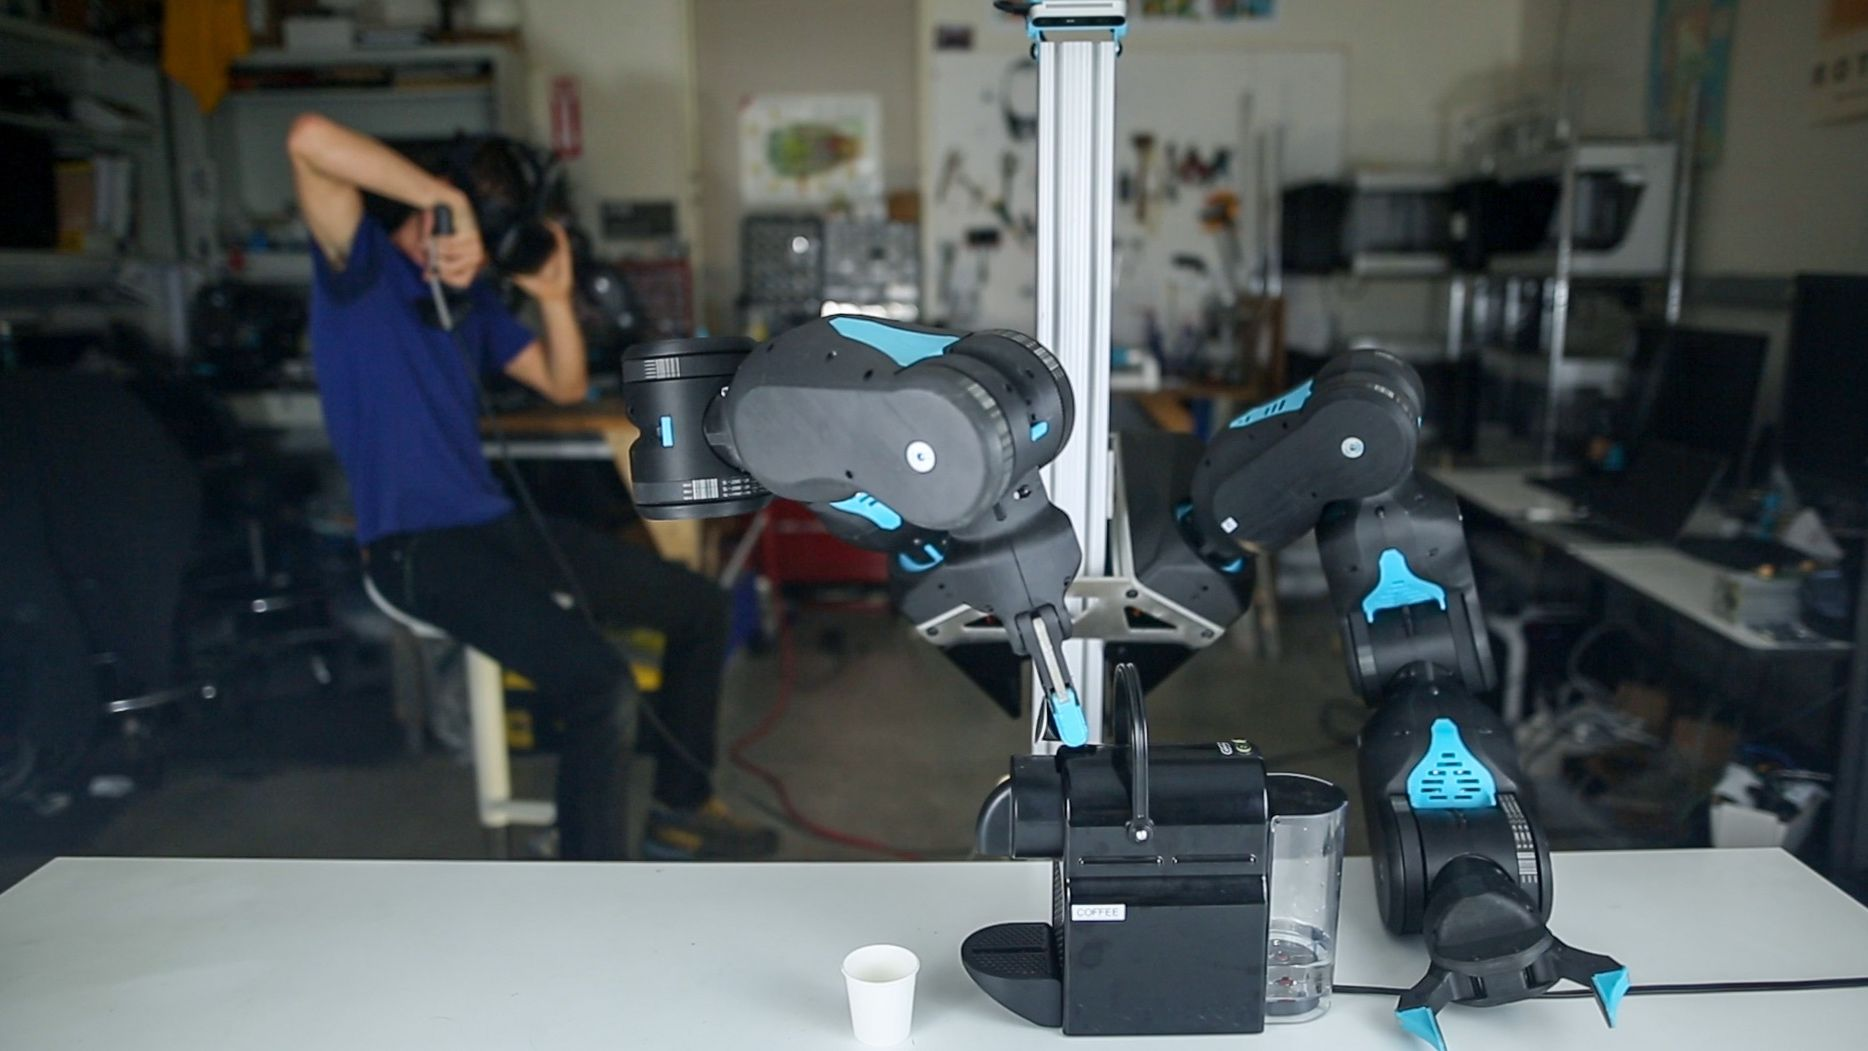 Blue Is a New Low-Cost Force-Controlled Robot Arm from UC Berkeley